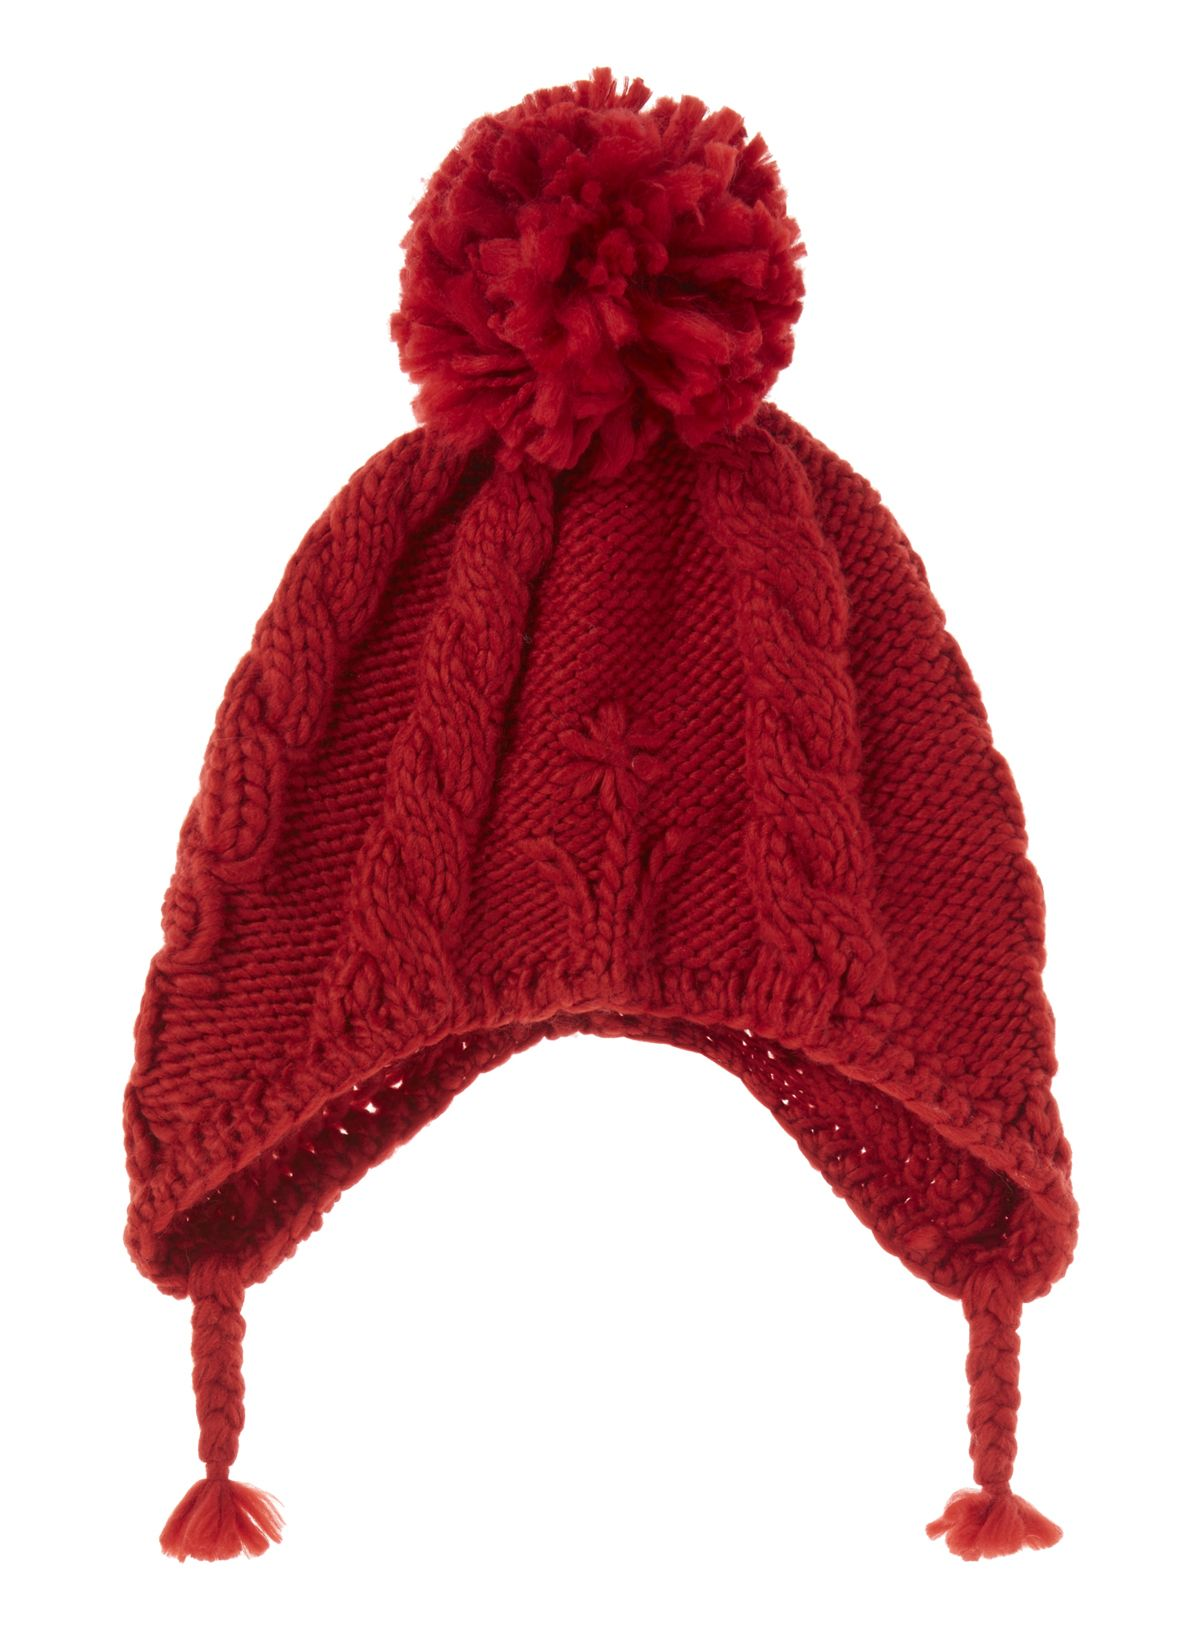 d25c5033 Boost her winter essentials with this red cable knit hat, designed in a  trapper style with a pom pom bobble. Girls red flower trapper hat Cable  knit Pom pom ...